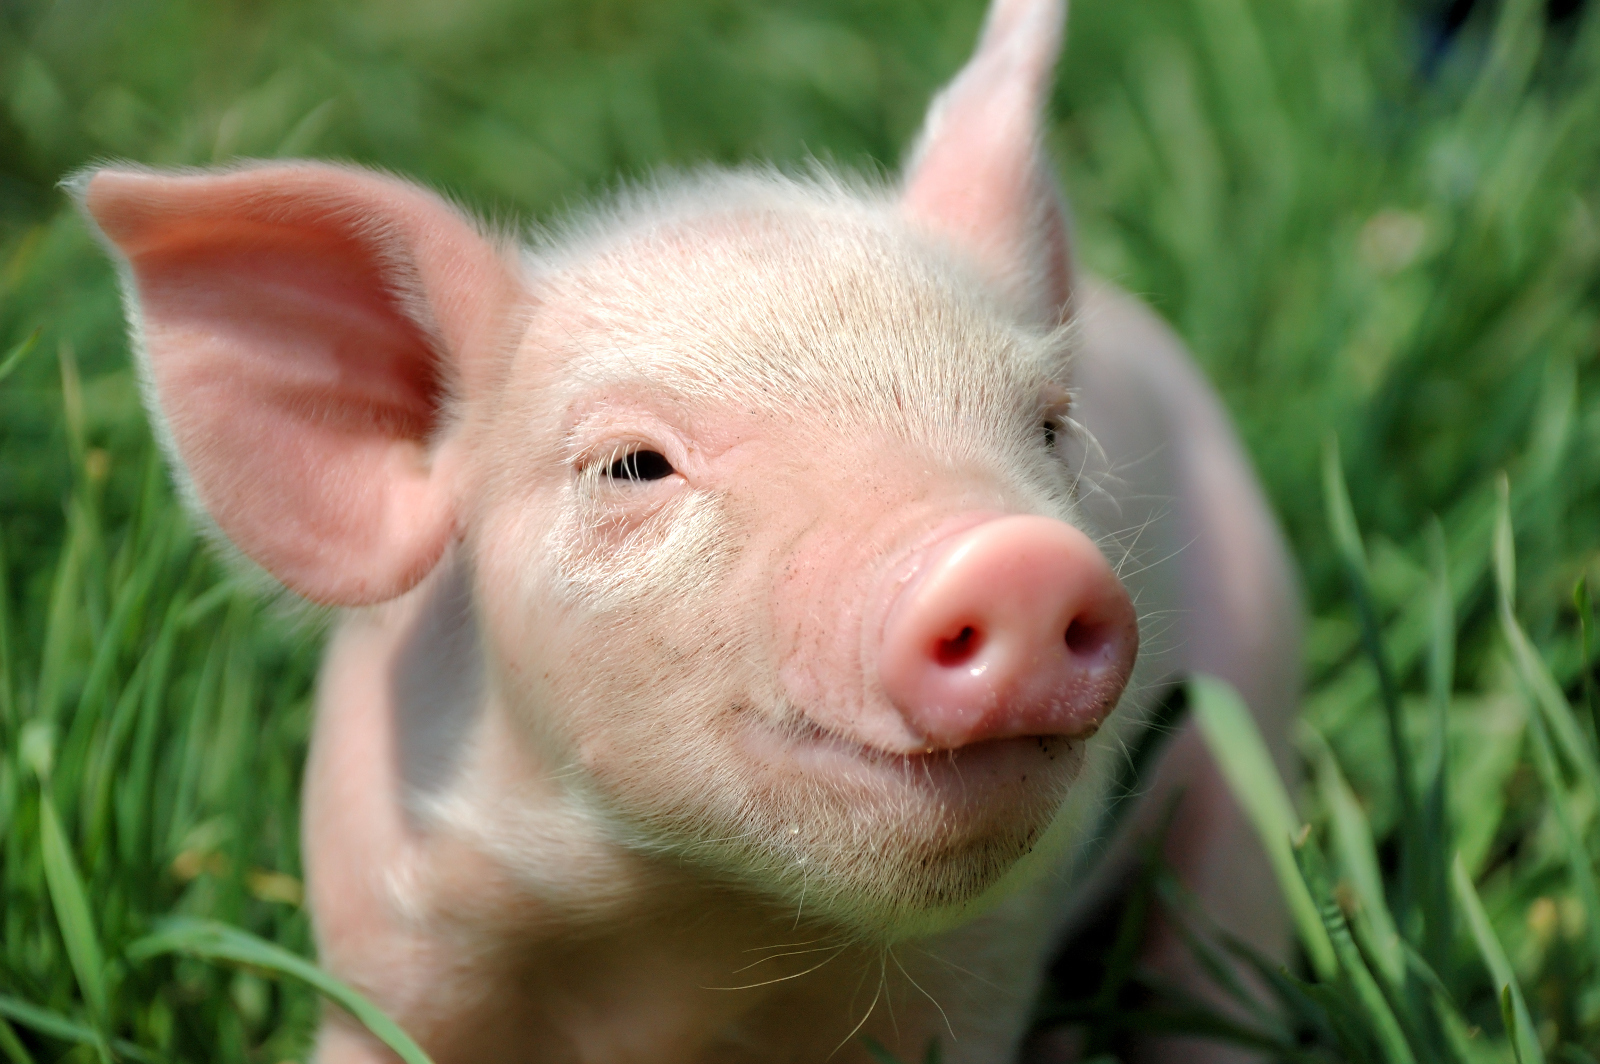 Facts You Probably Didn't Know About Farm Animals